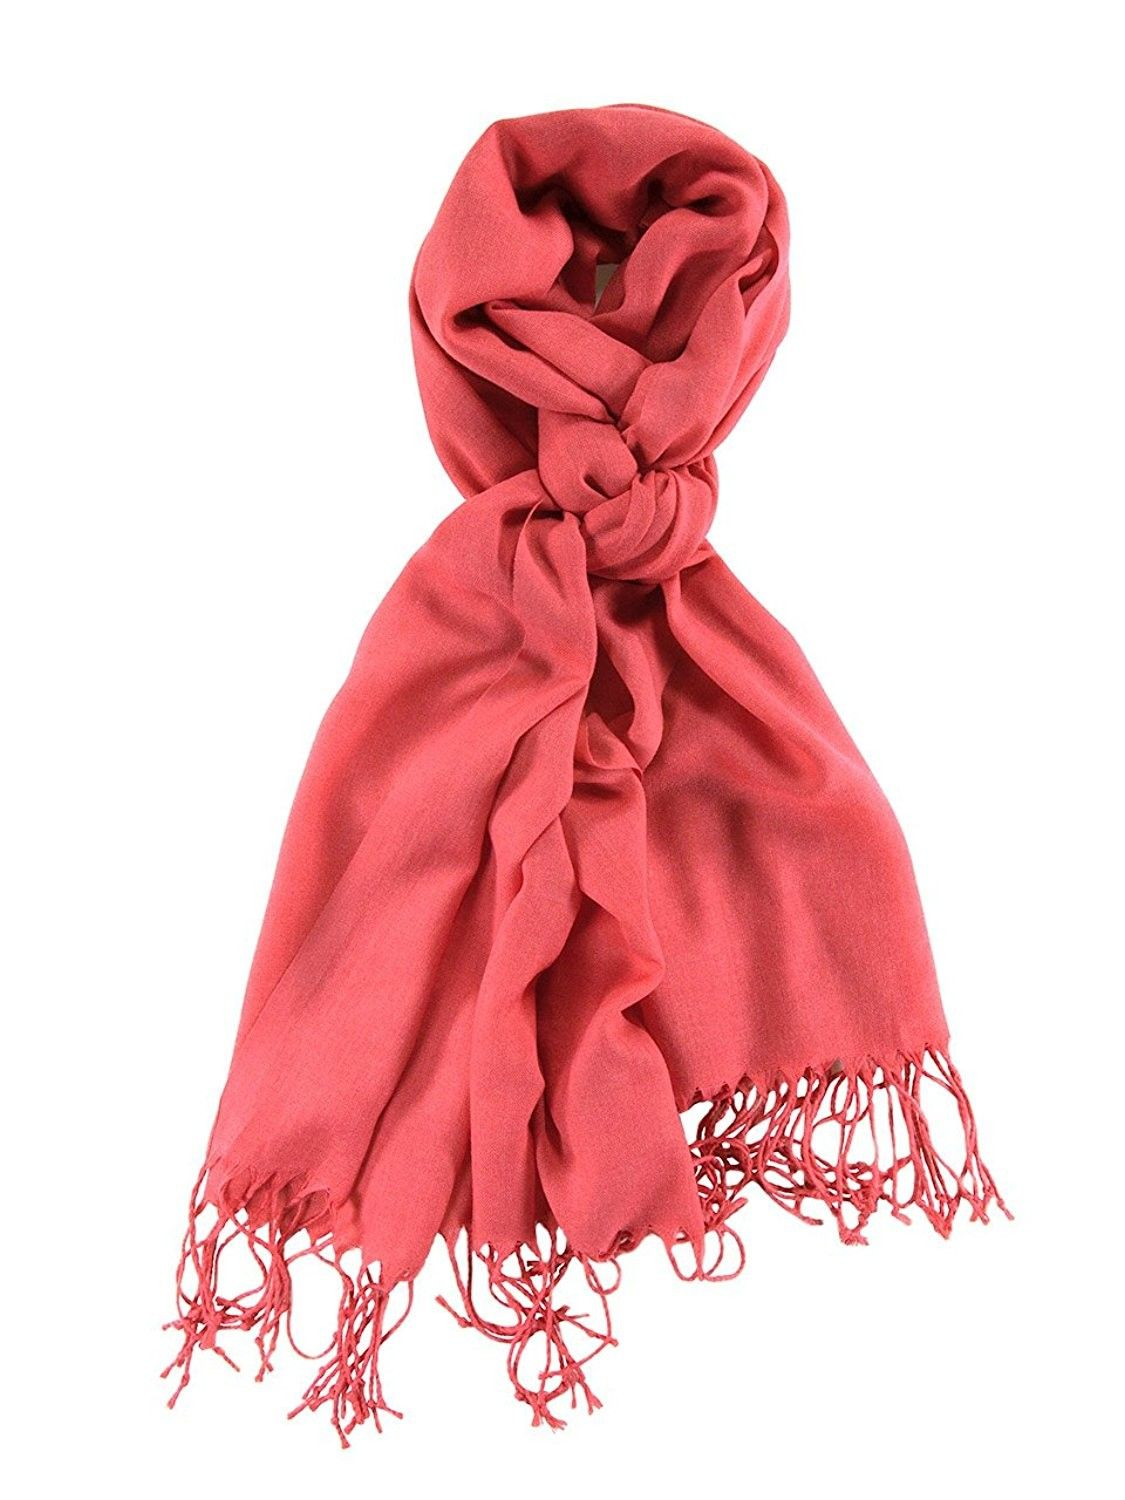 9b350e6cf64 Light Weight Solid Color Pashmina Scarf- Silk Feel   - Coral Cloud -  CJ11RW162C7 - Scarves   Wraps